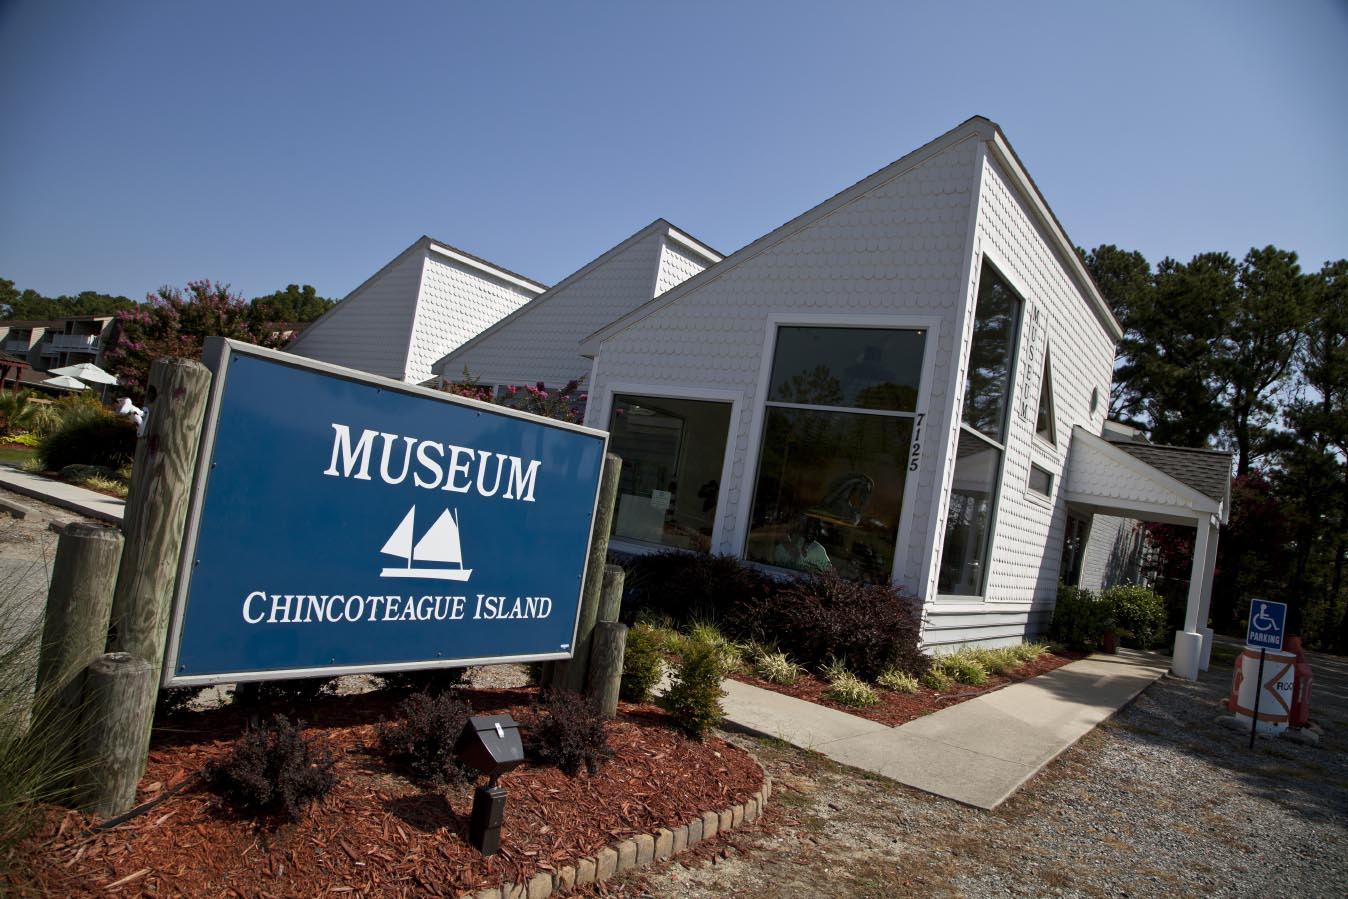 Museum of Chincoteague Island